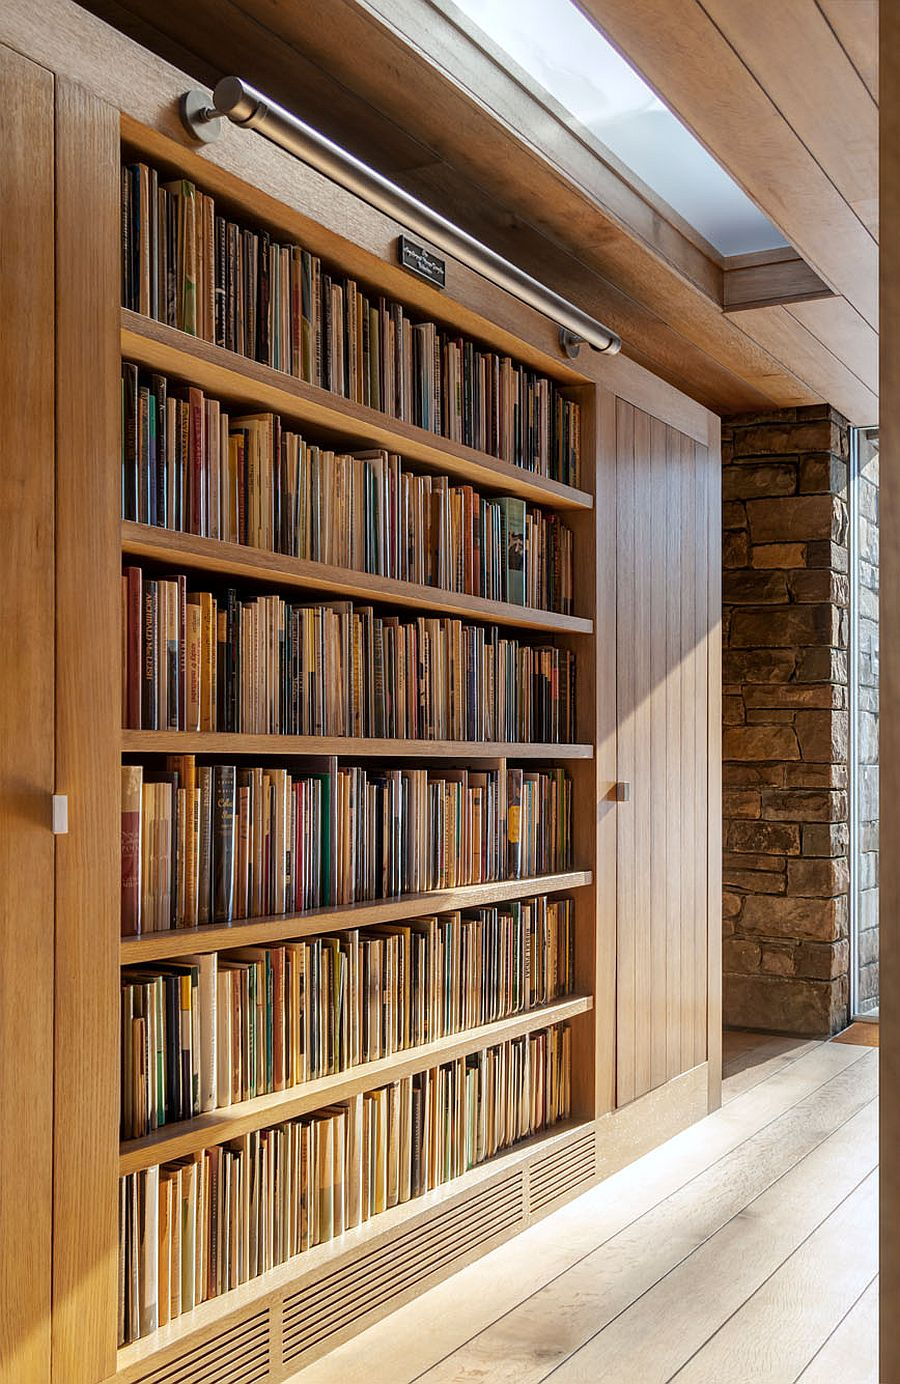 Custom wooden bookshelves for the large collection of books inside the Writer's Studio